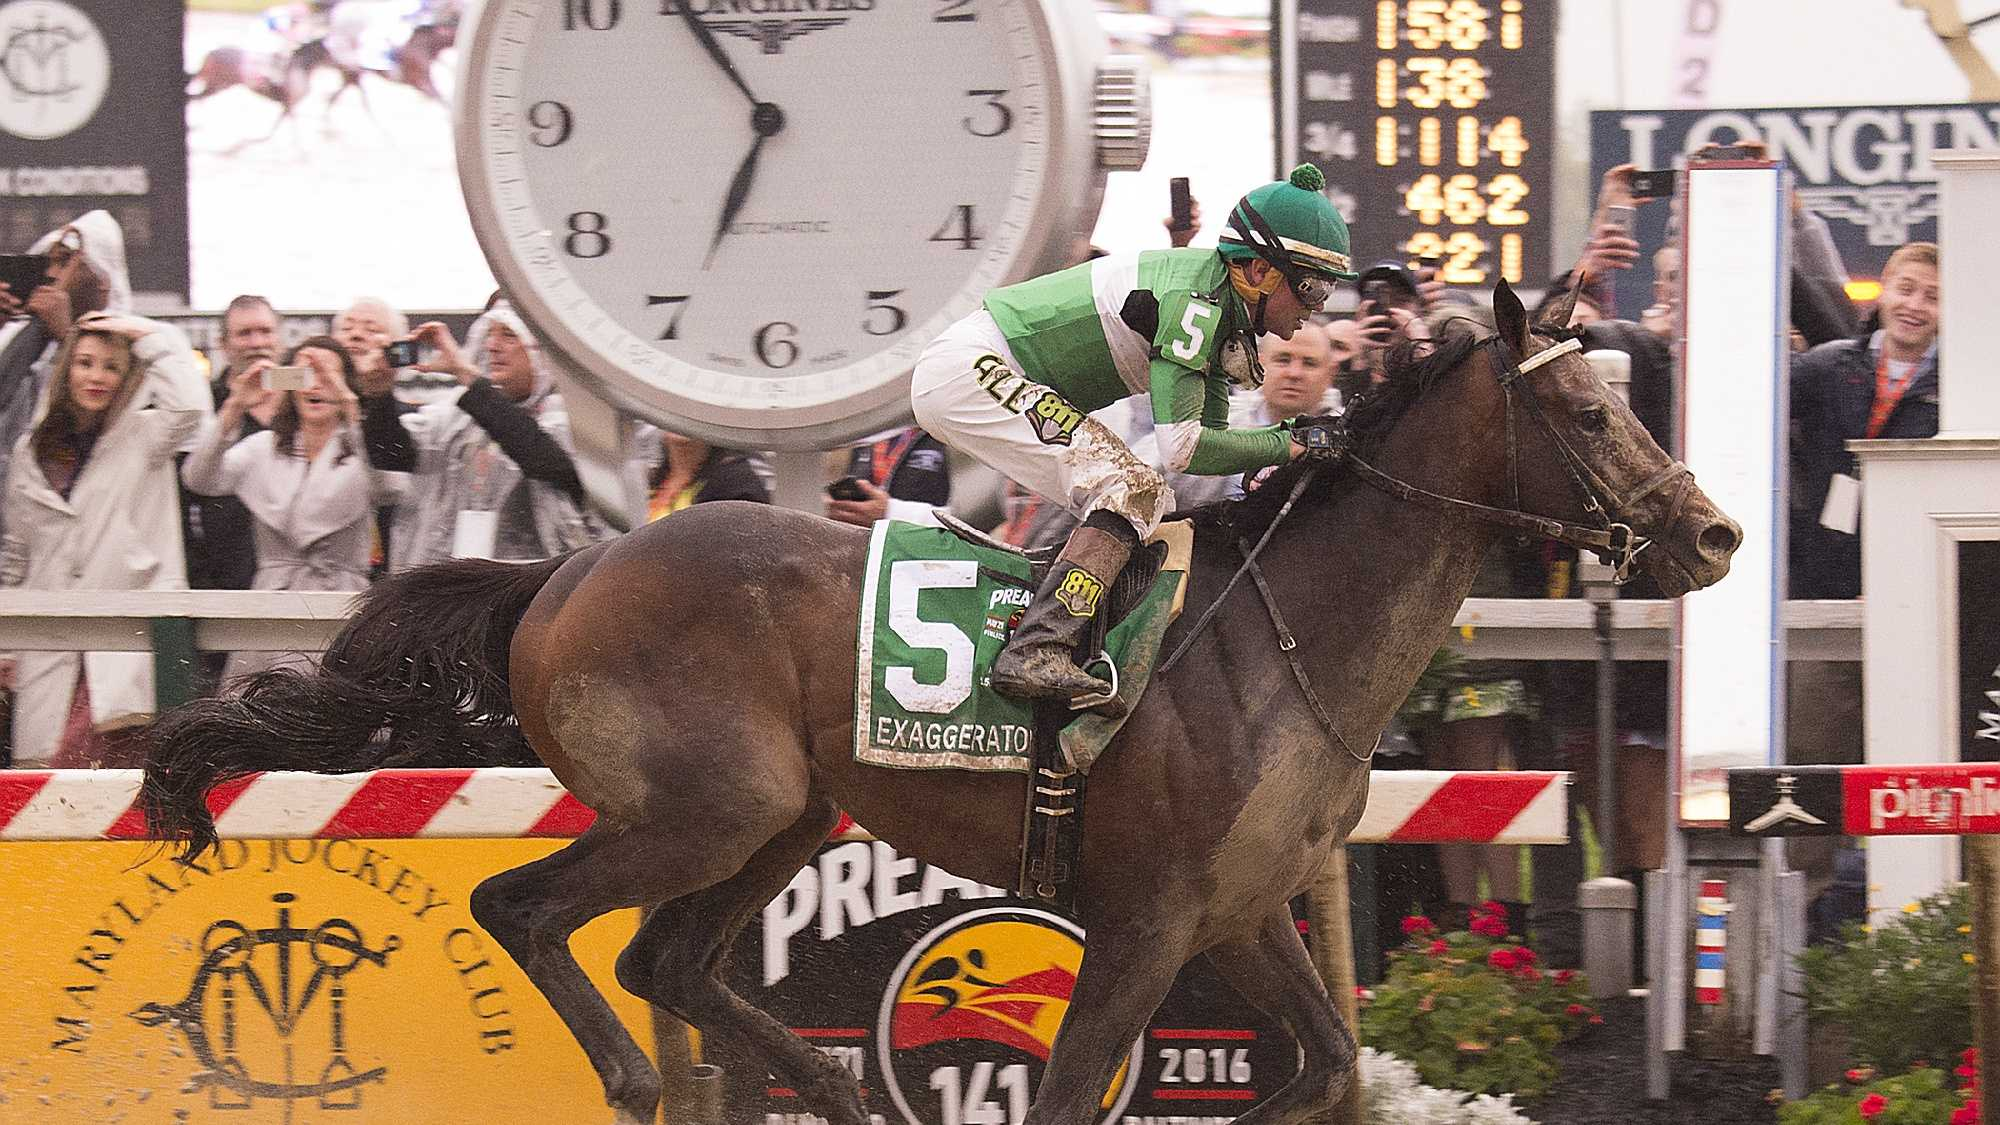 Exaggerator crosses the finish line at the 141st Preakness Stakes